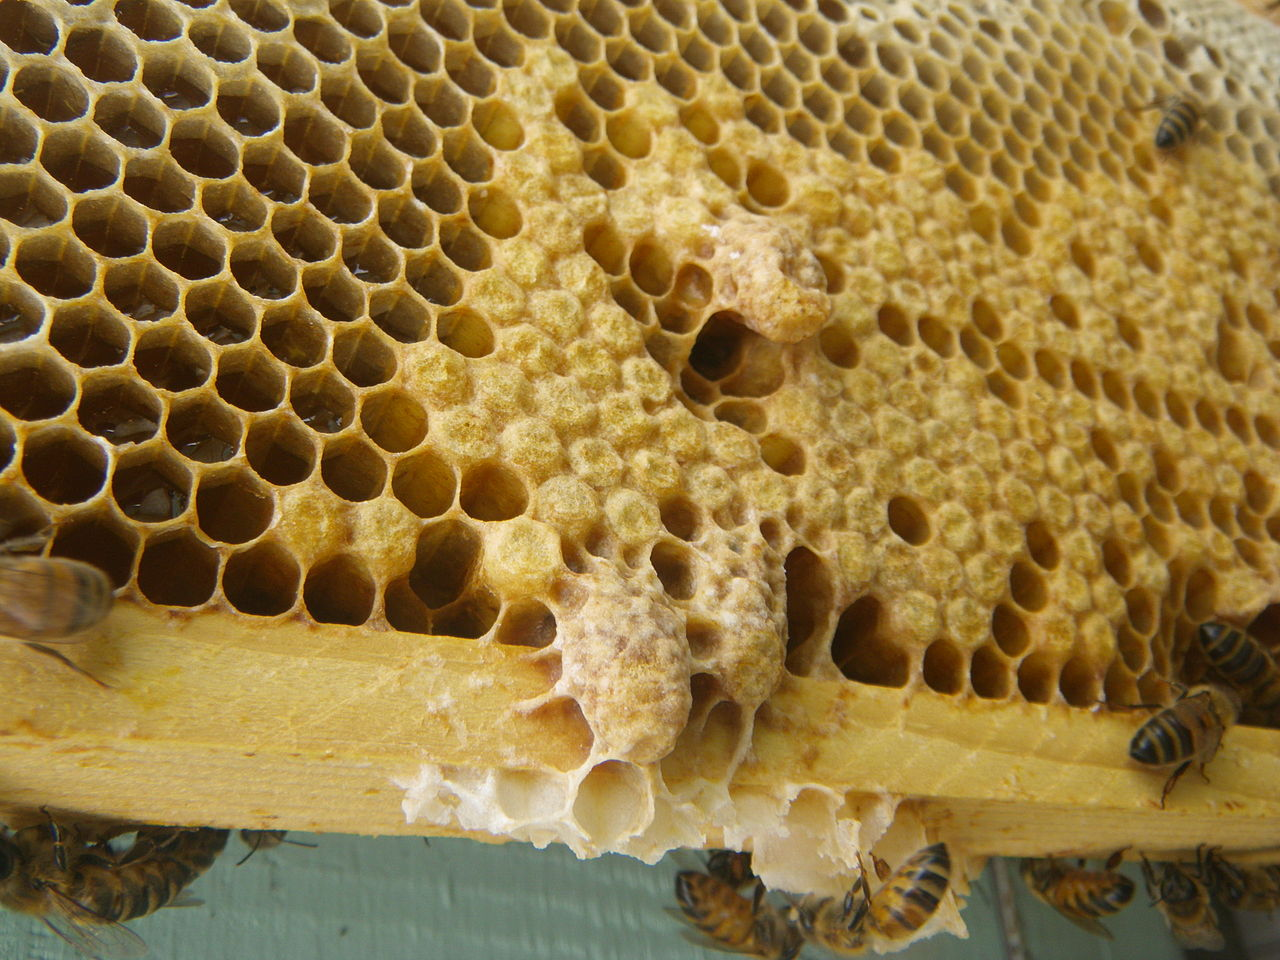 File:Capped emergency supercedure queen cells of the honey ...